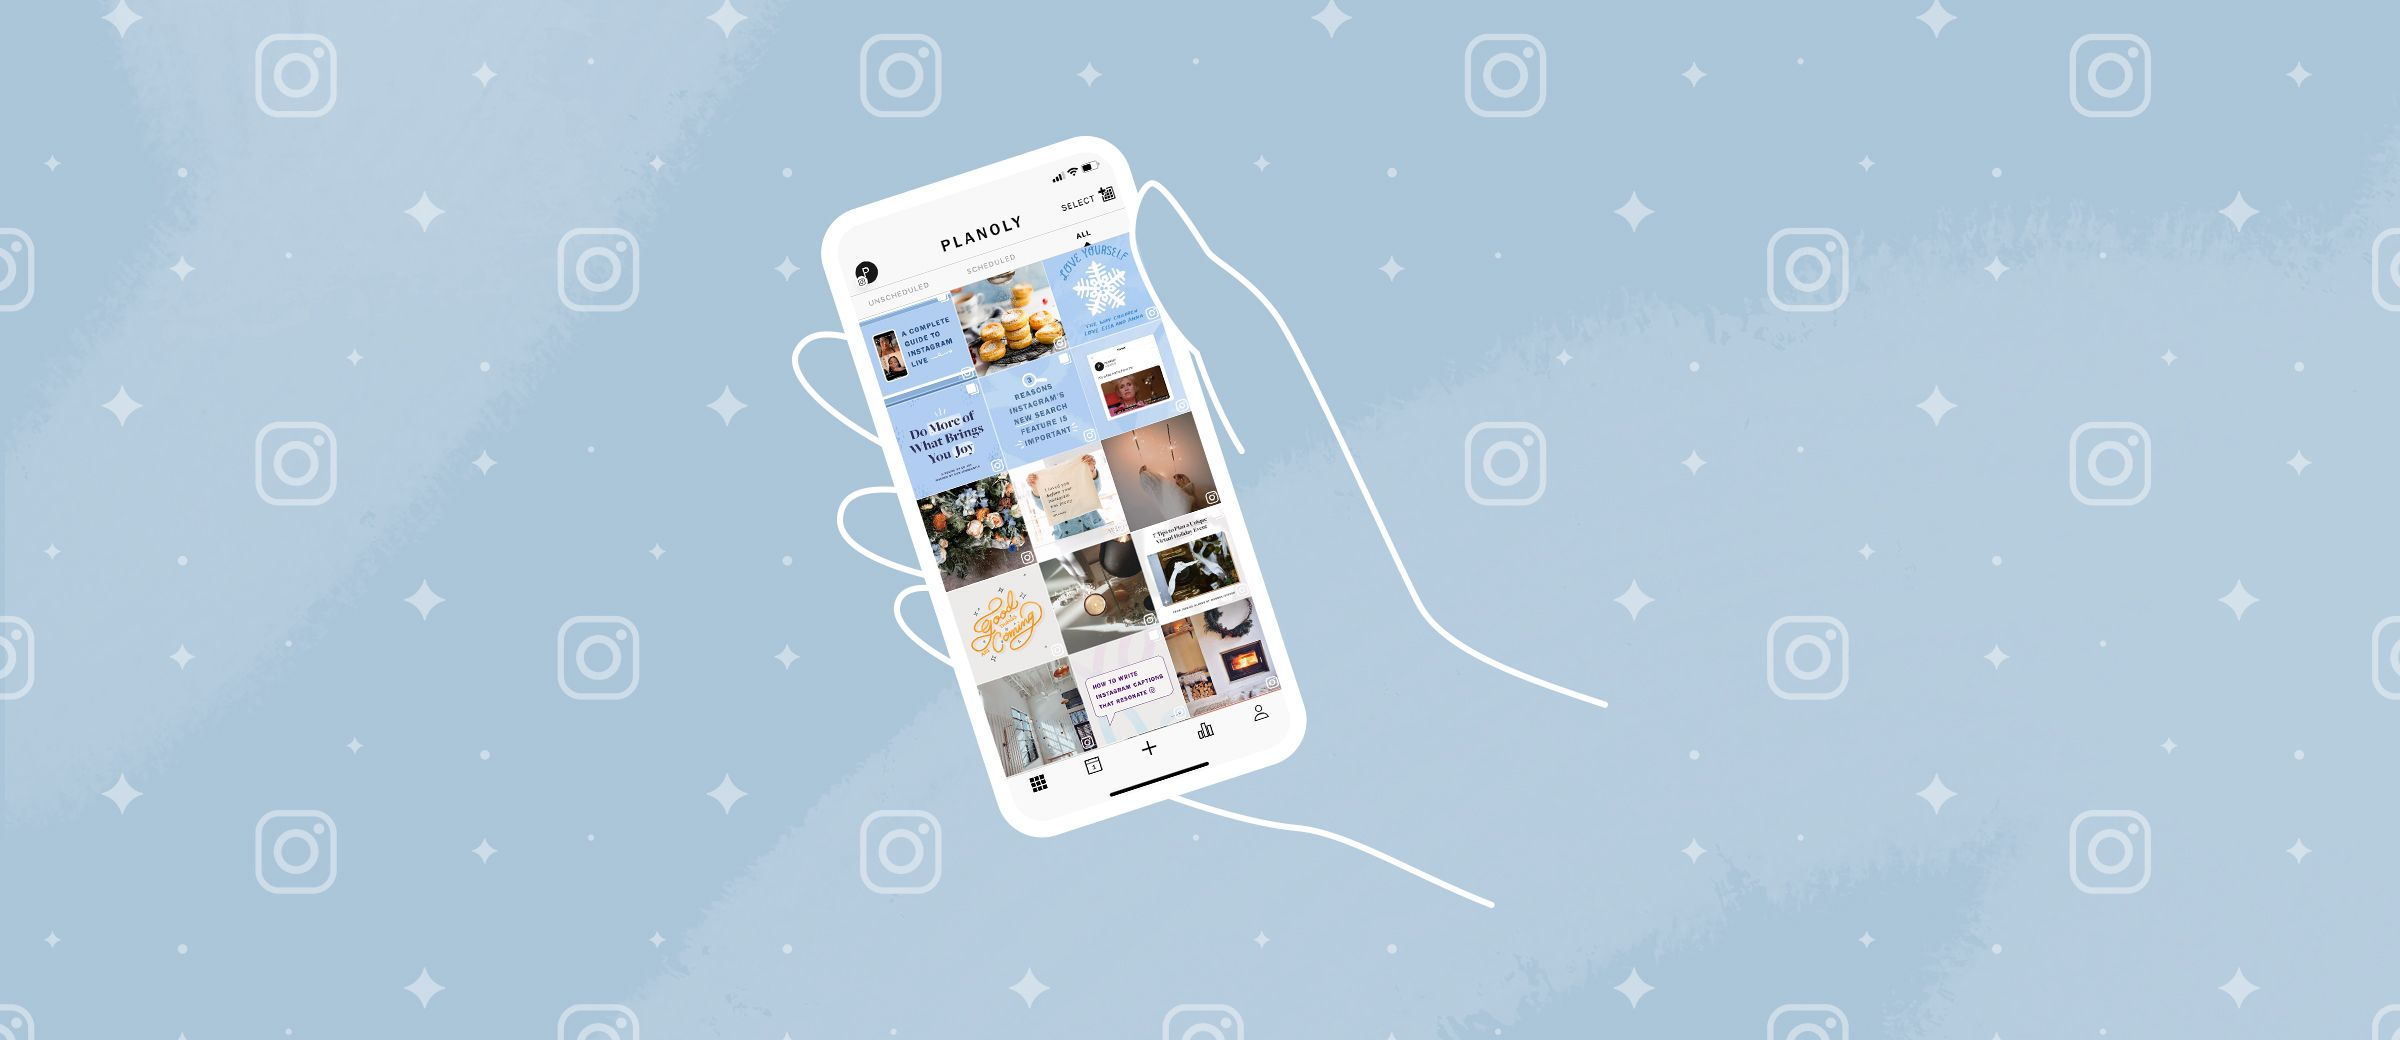 Read about A Guide for Influencers: 10 Best IG Planner Features & Tools, on PLANOLY